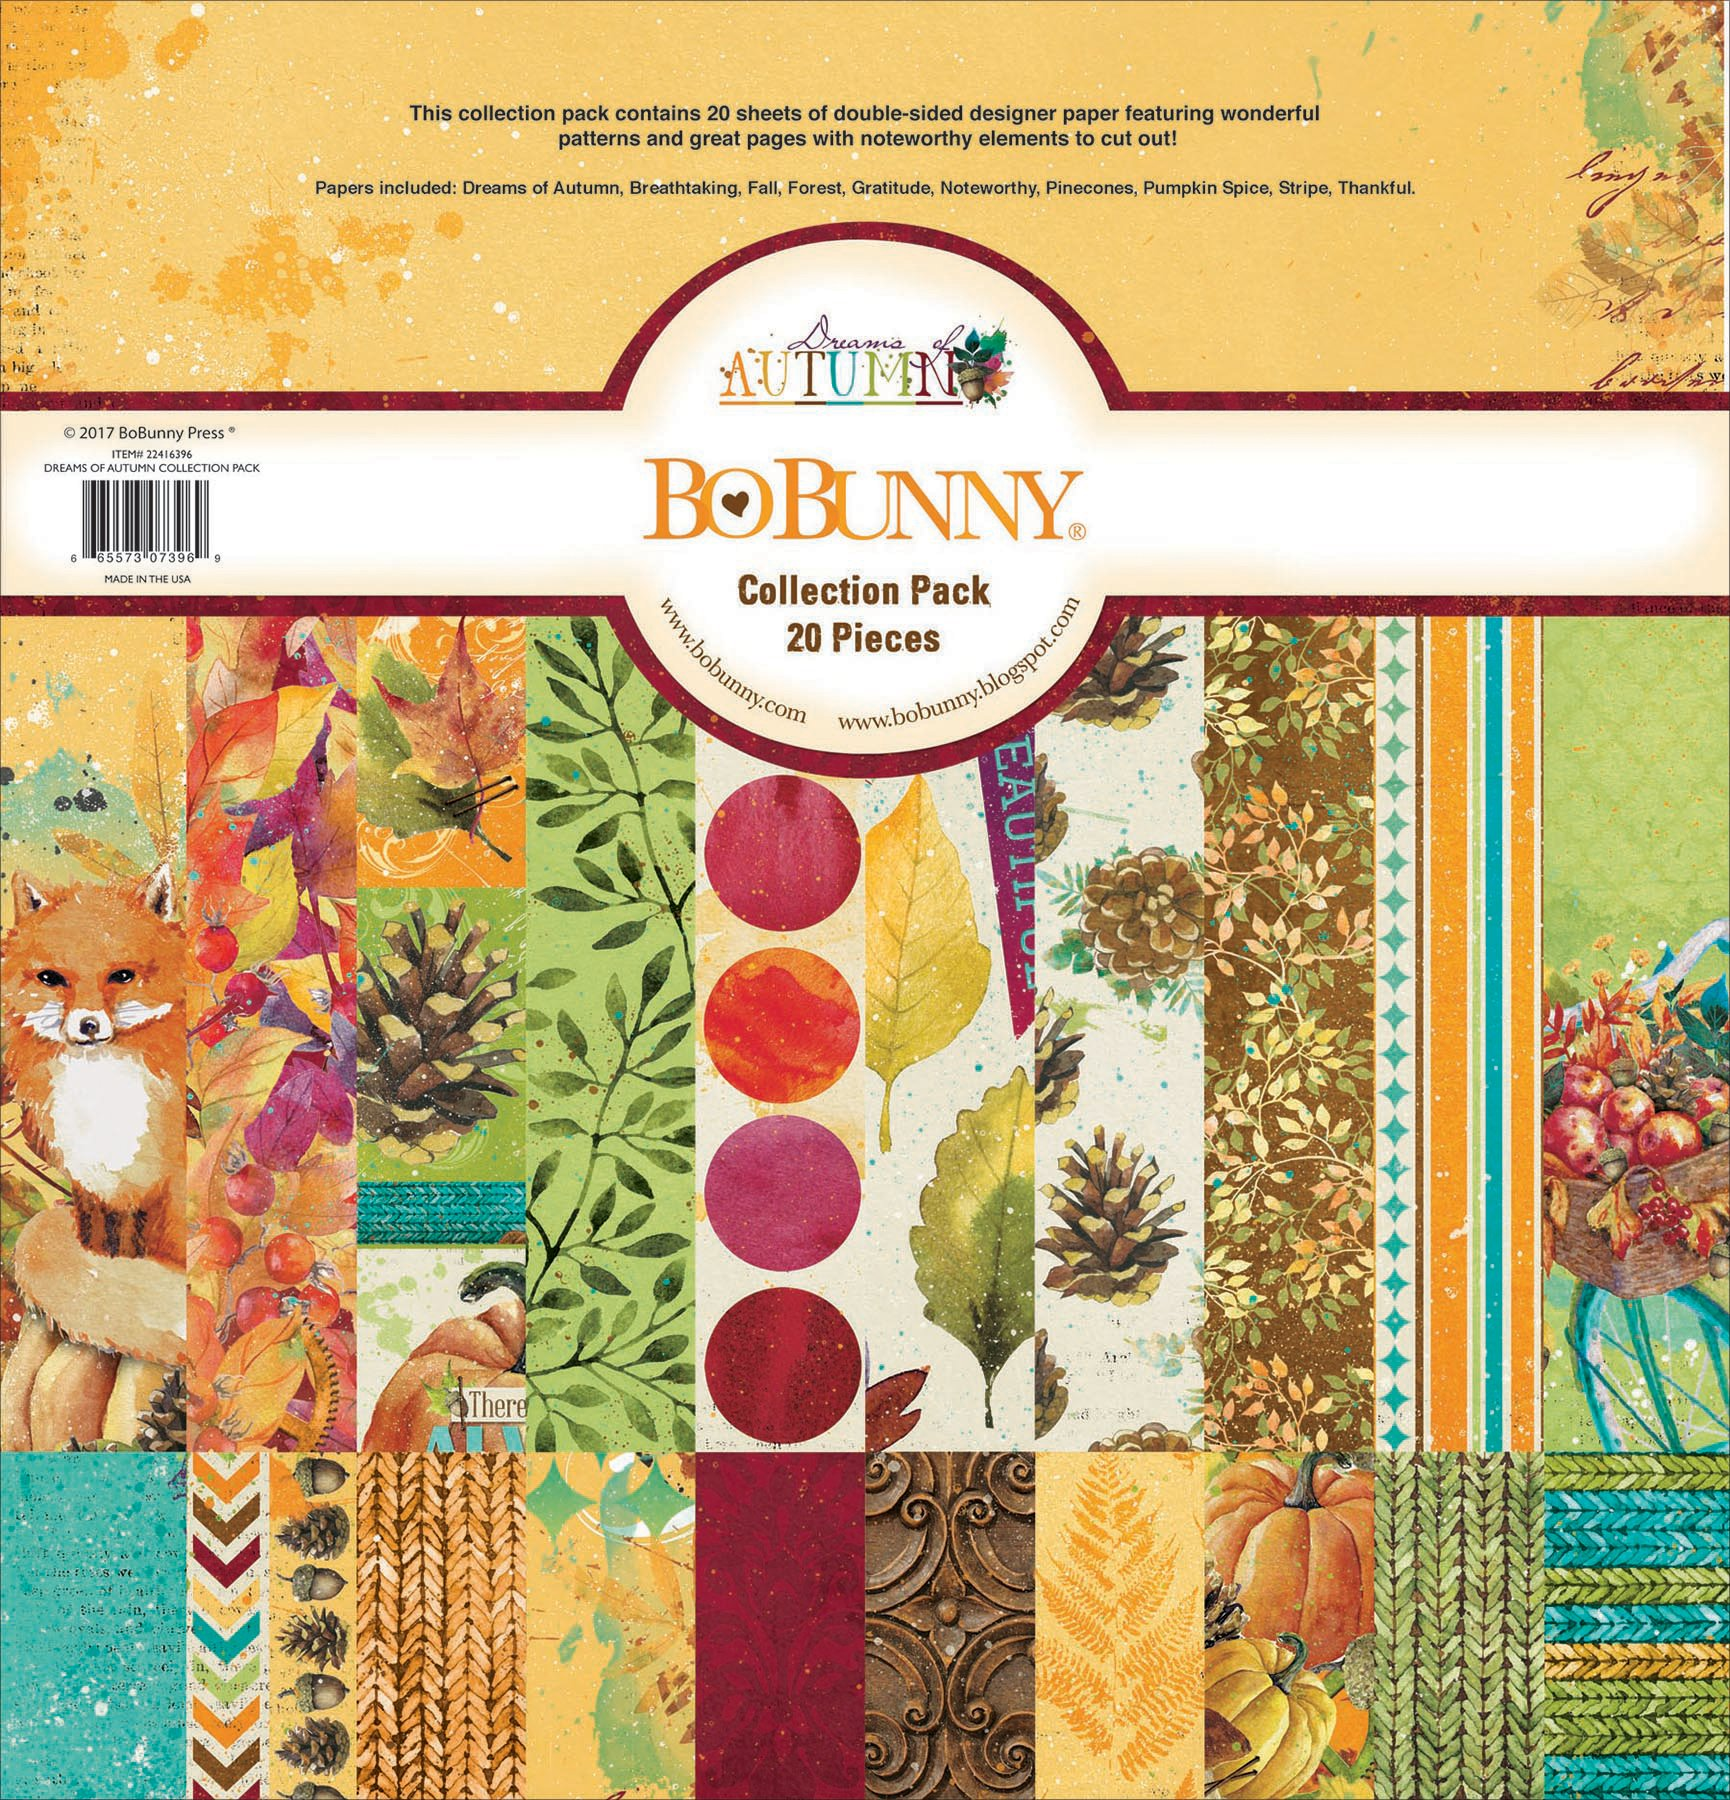 Bo Bunny BBU22416396 Dreams of Autumn Collection Pack Paper Pad